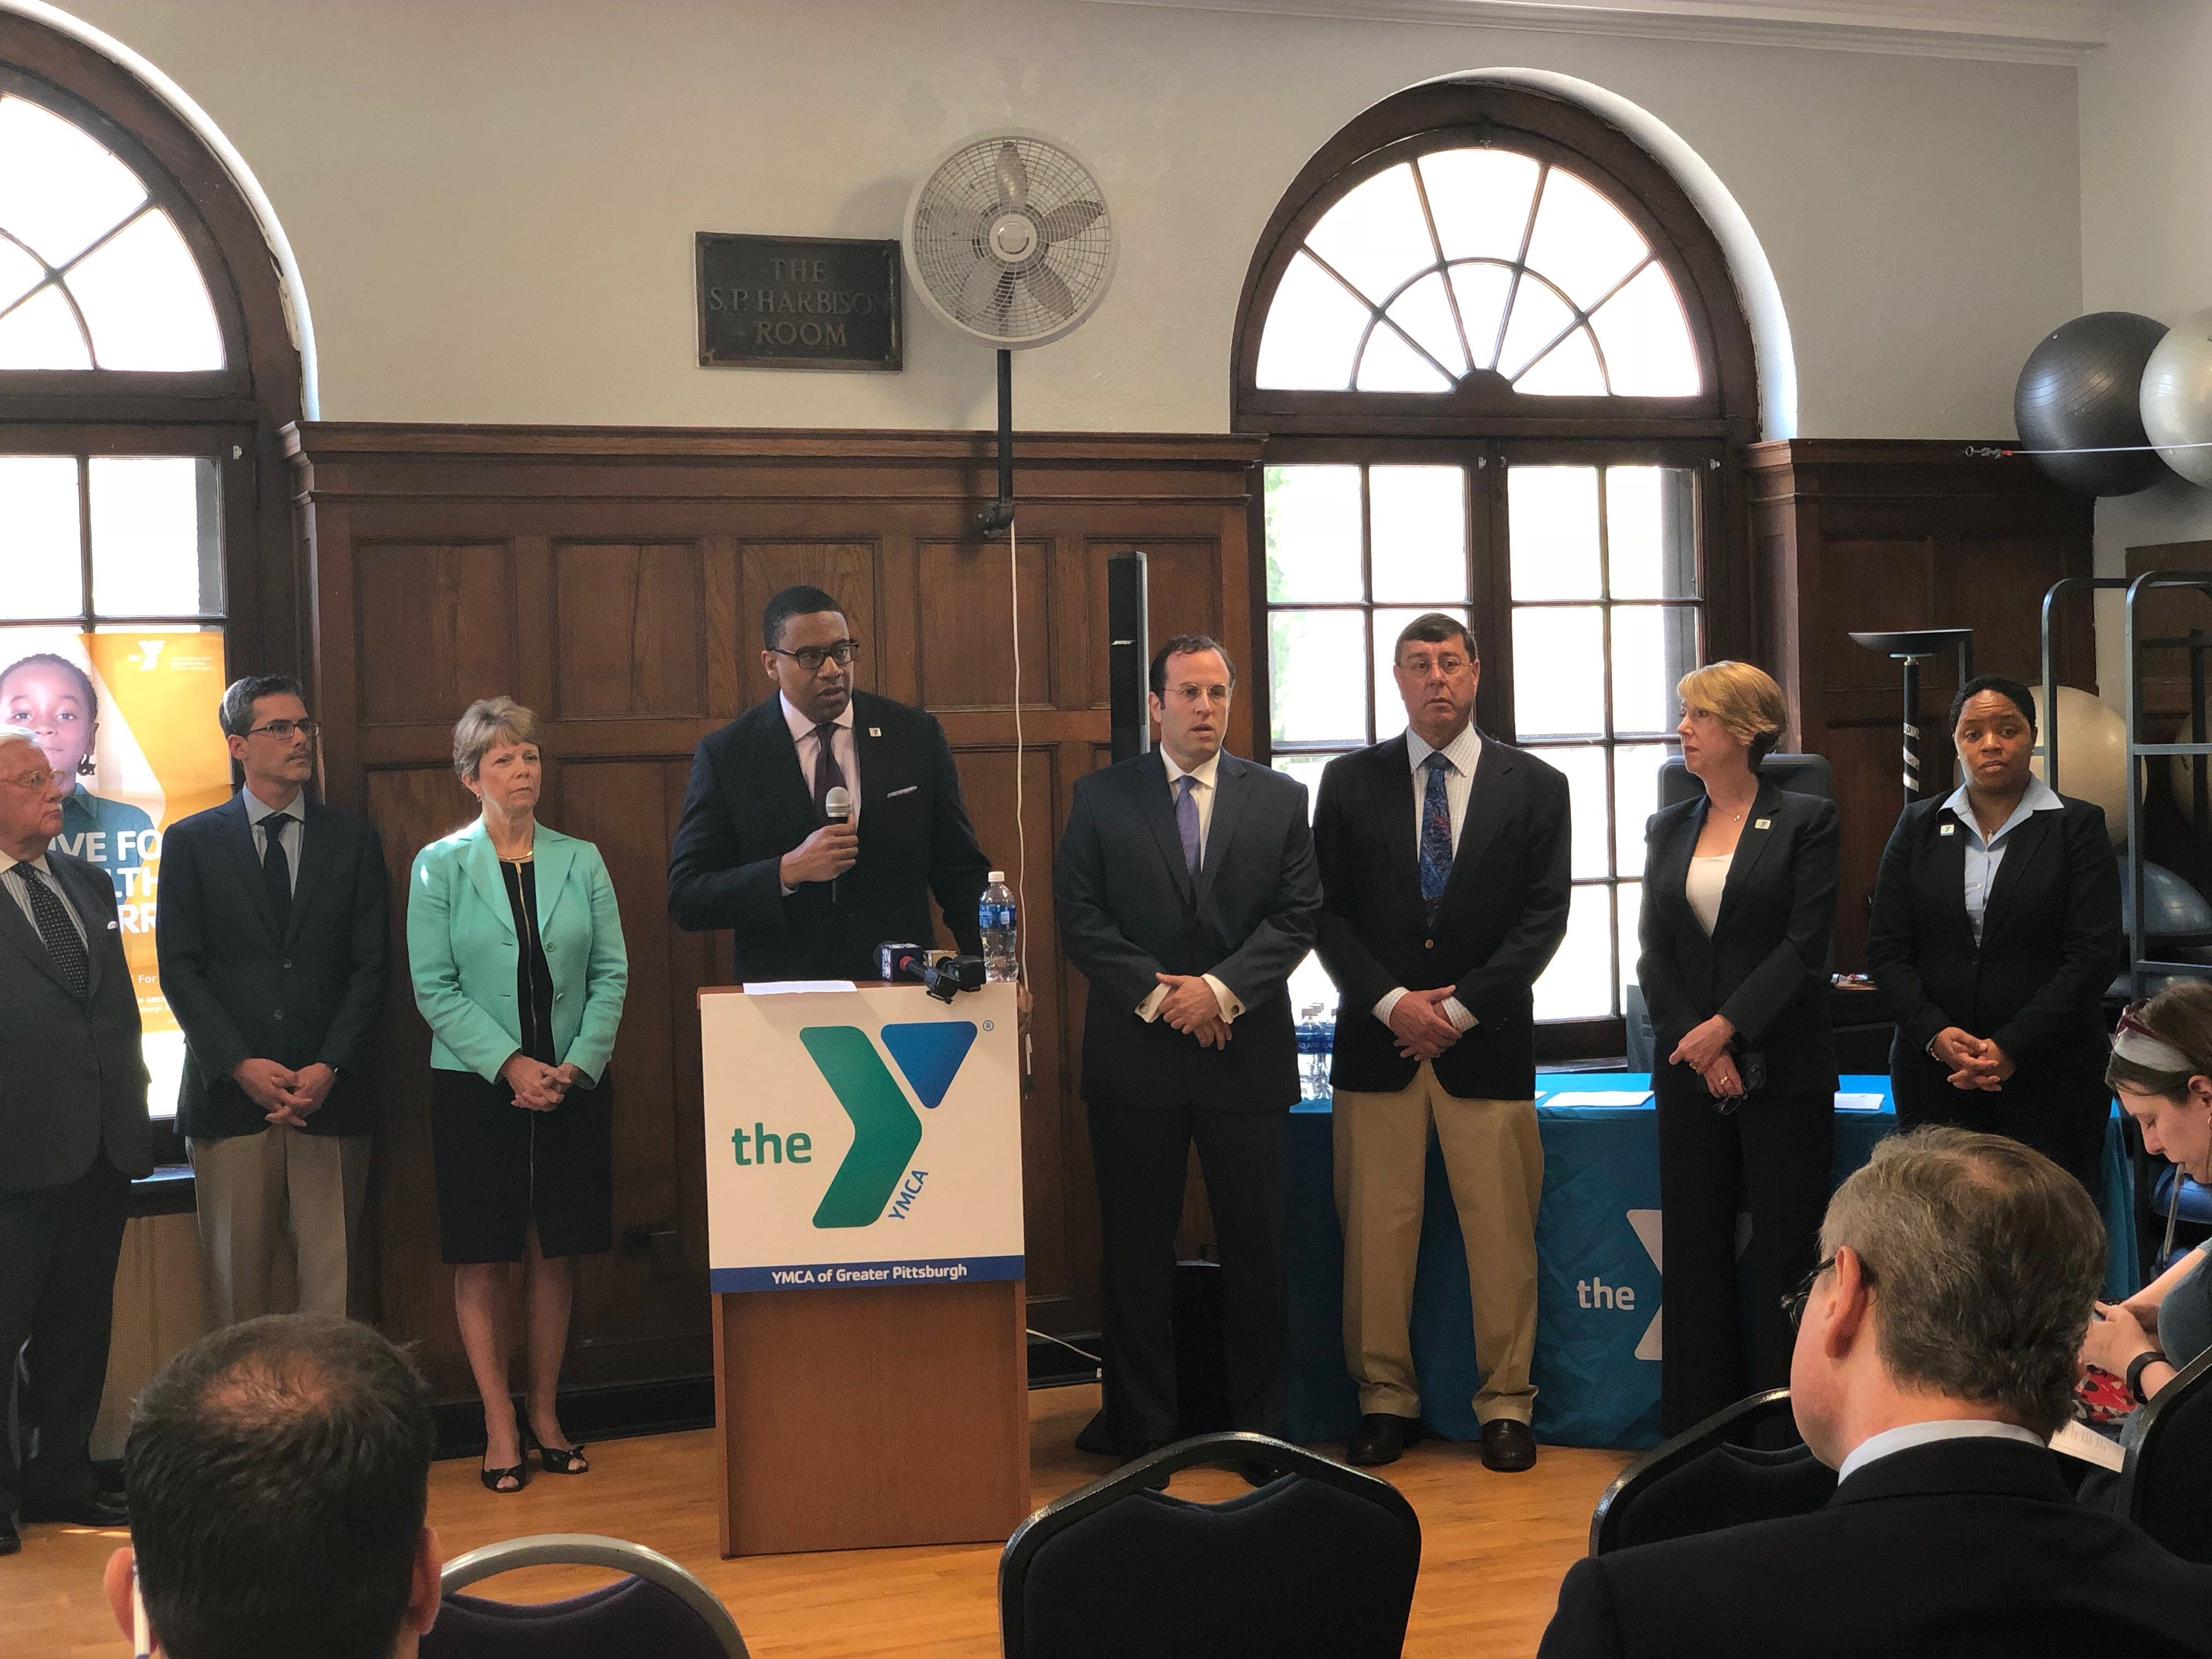 YMCA press conference